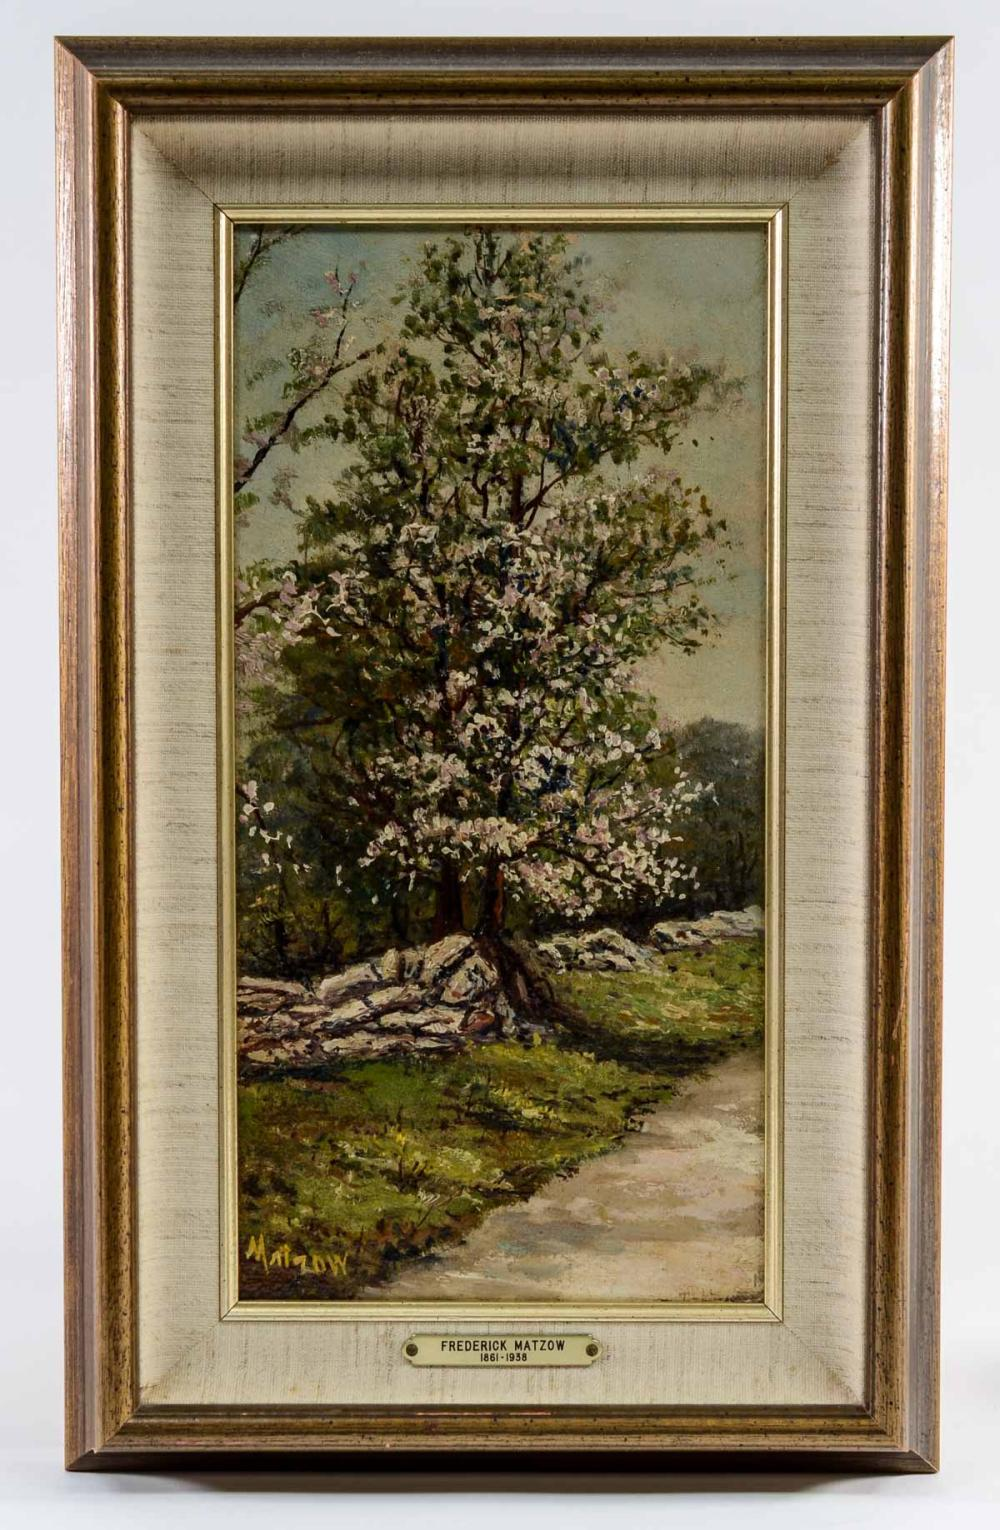 Frederick Matzow OOB Flowering Tree